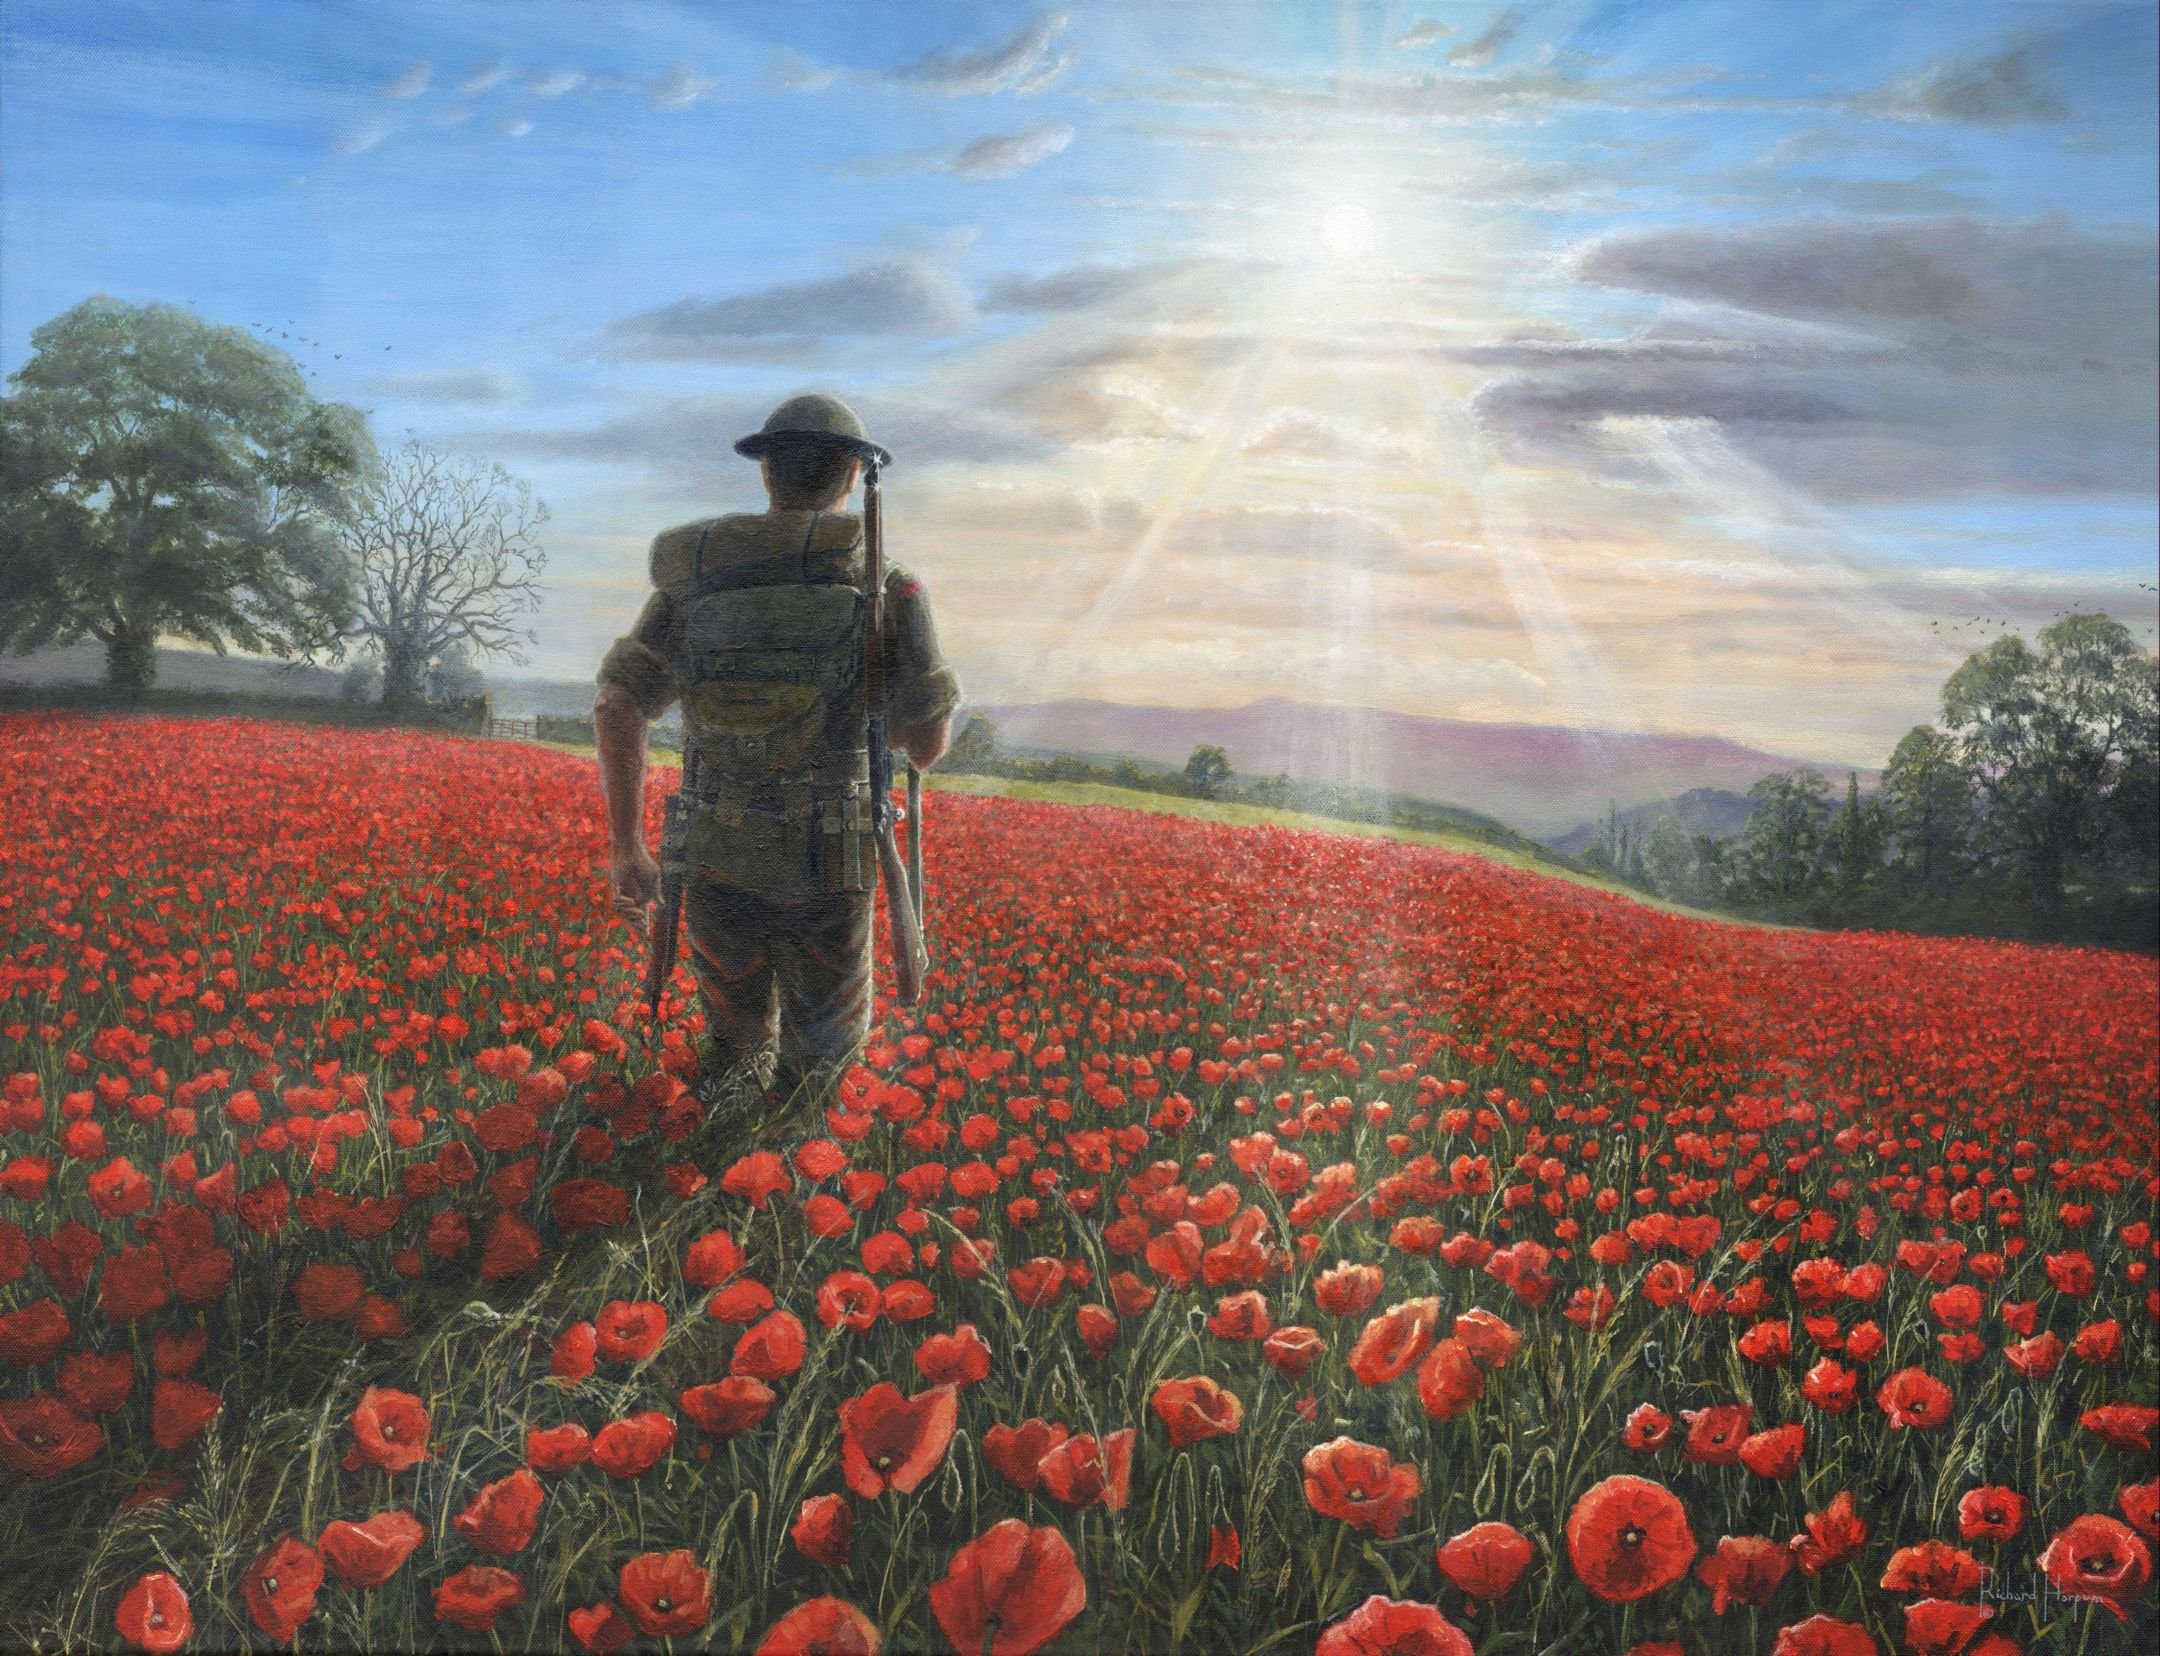 Painting - Tommy - WW1 soldier in poppy field